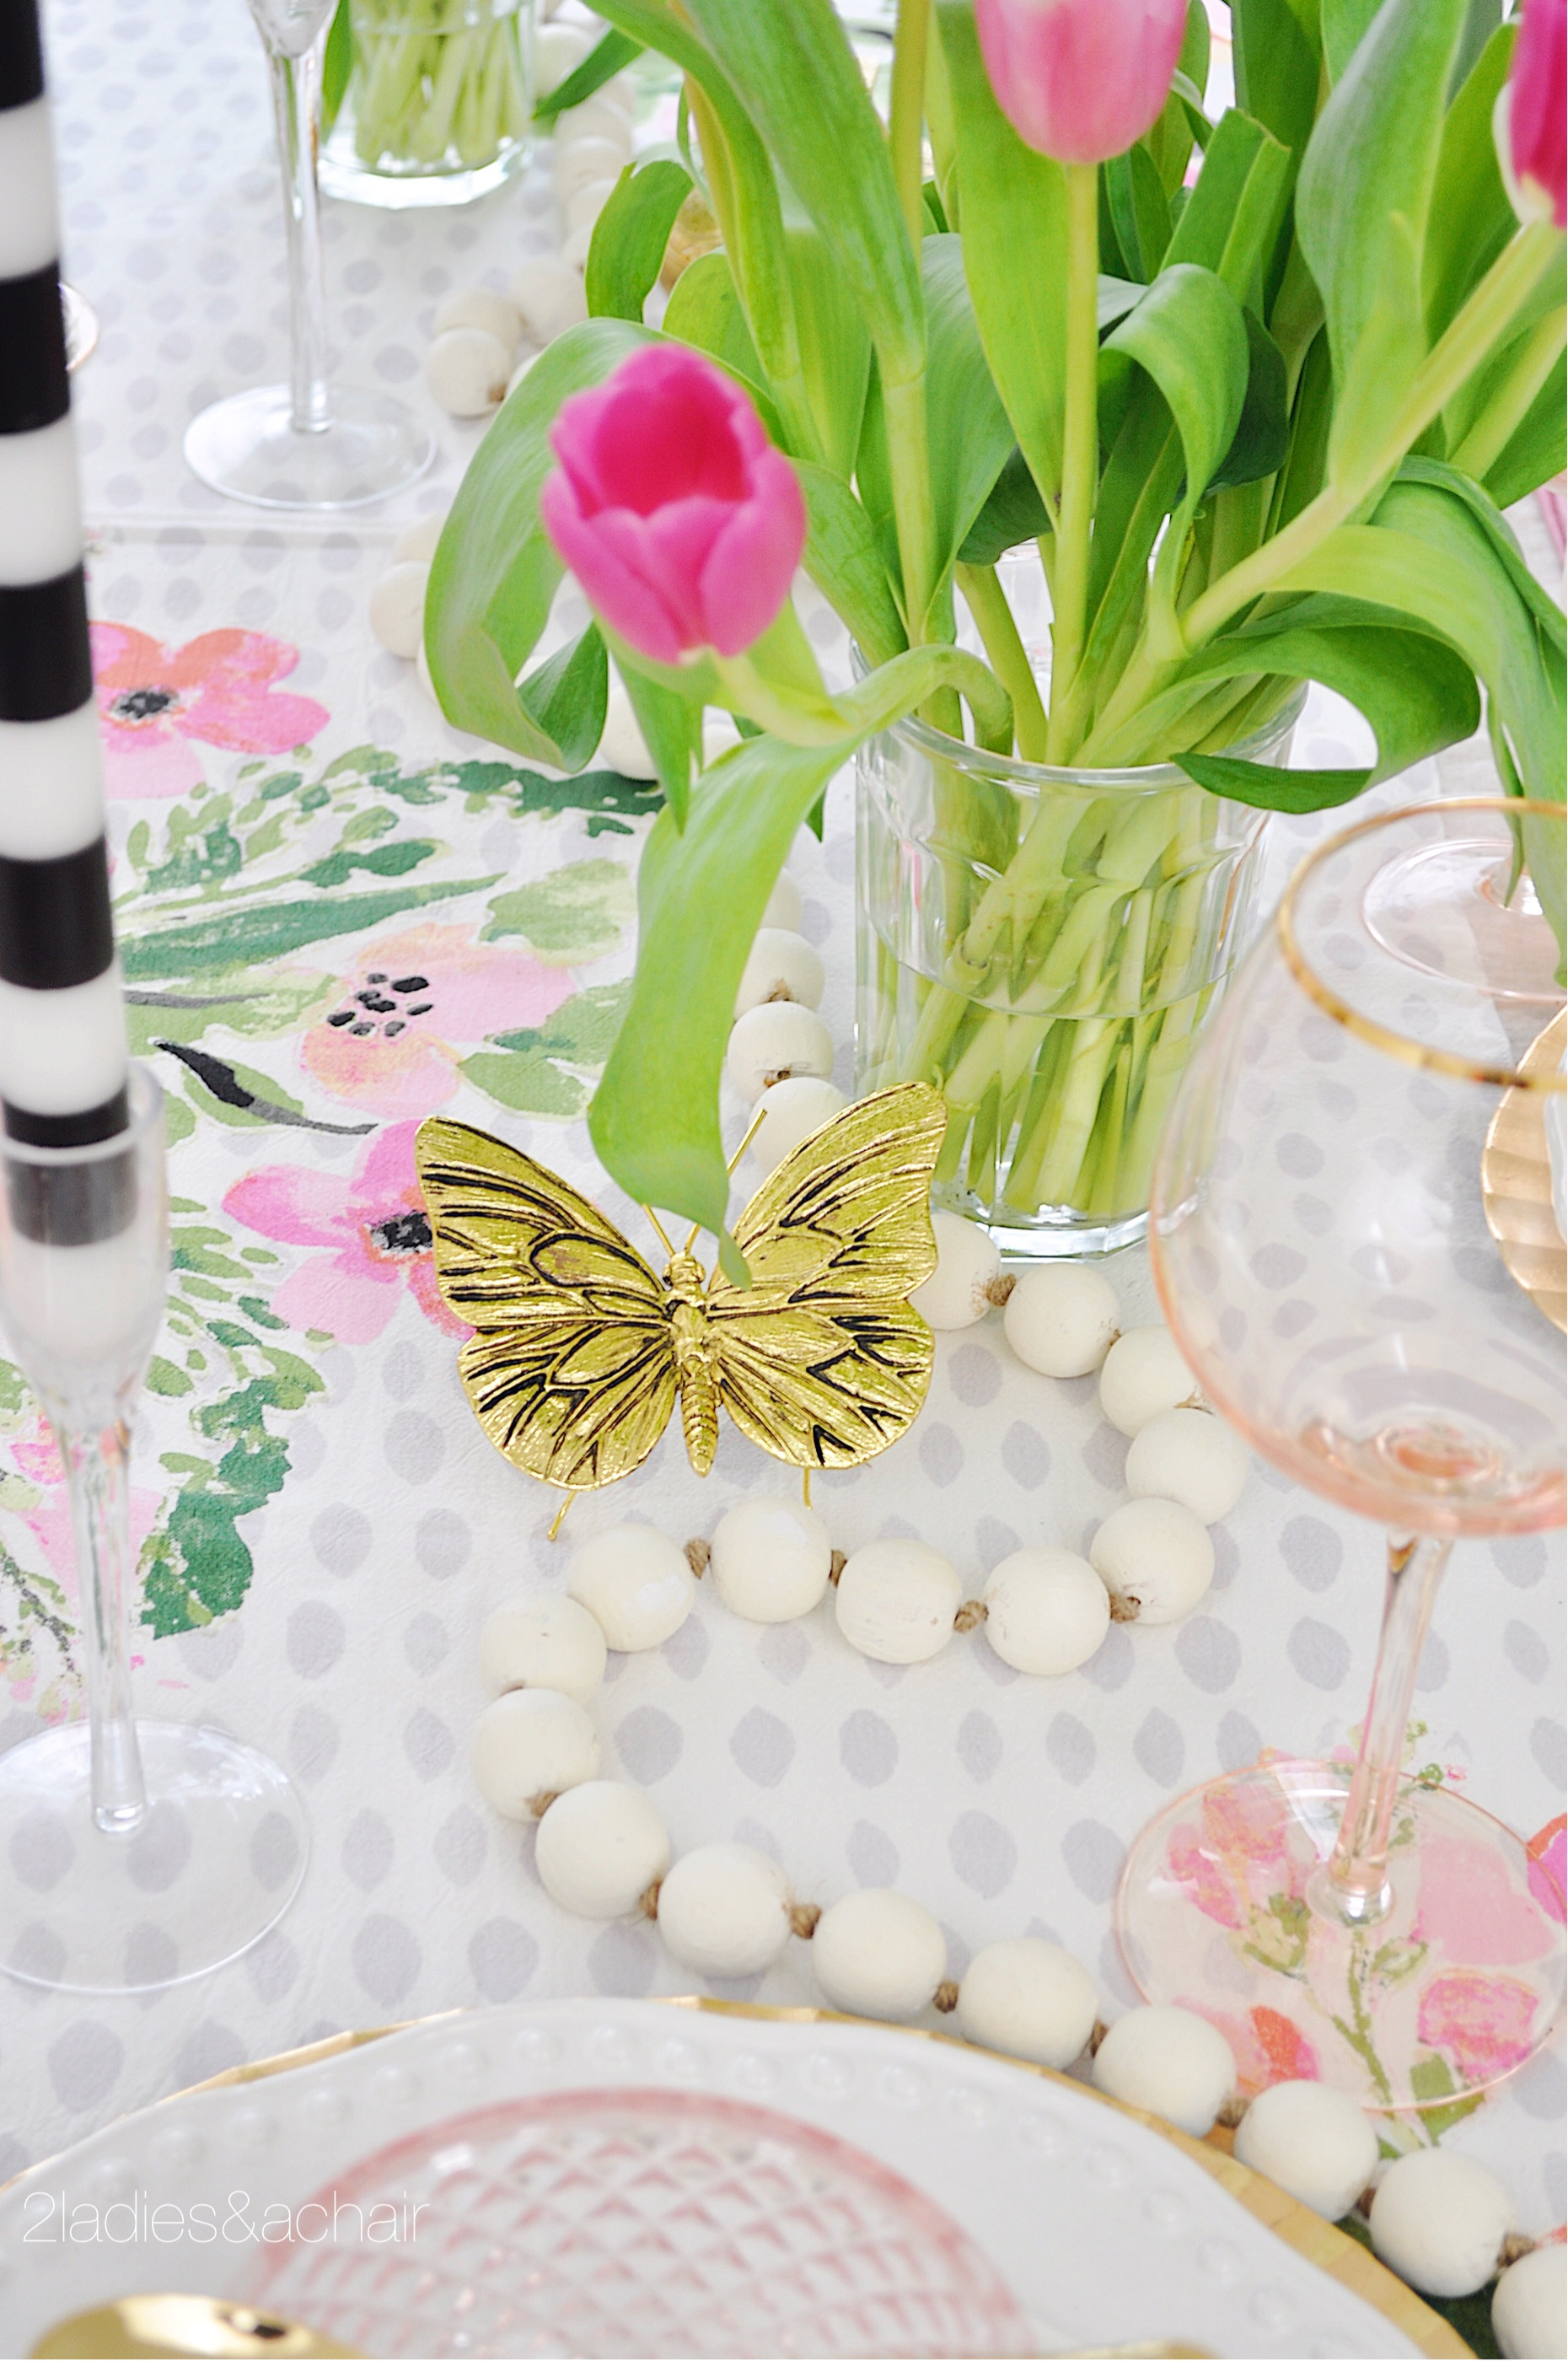 spring tablescape decor IMG_1930.JPG